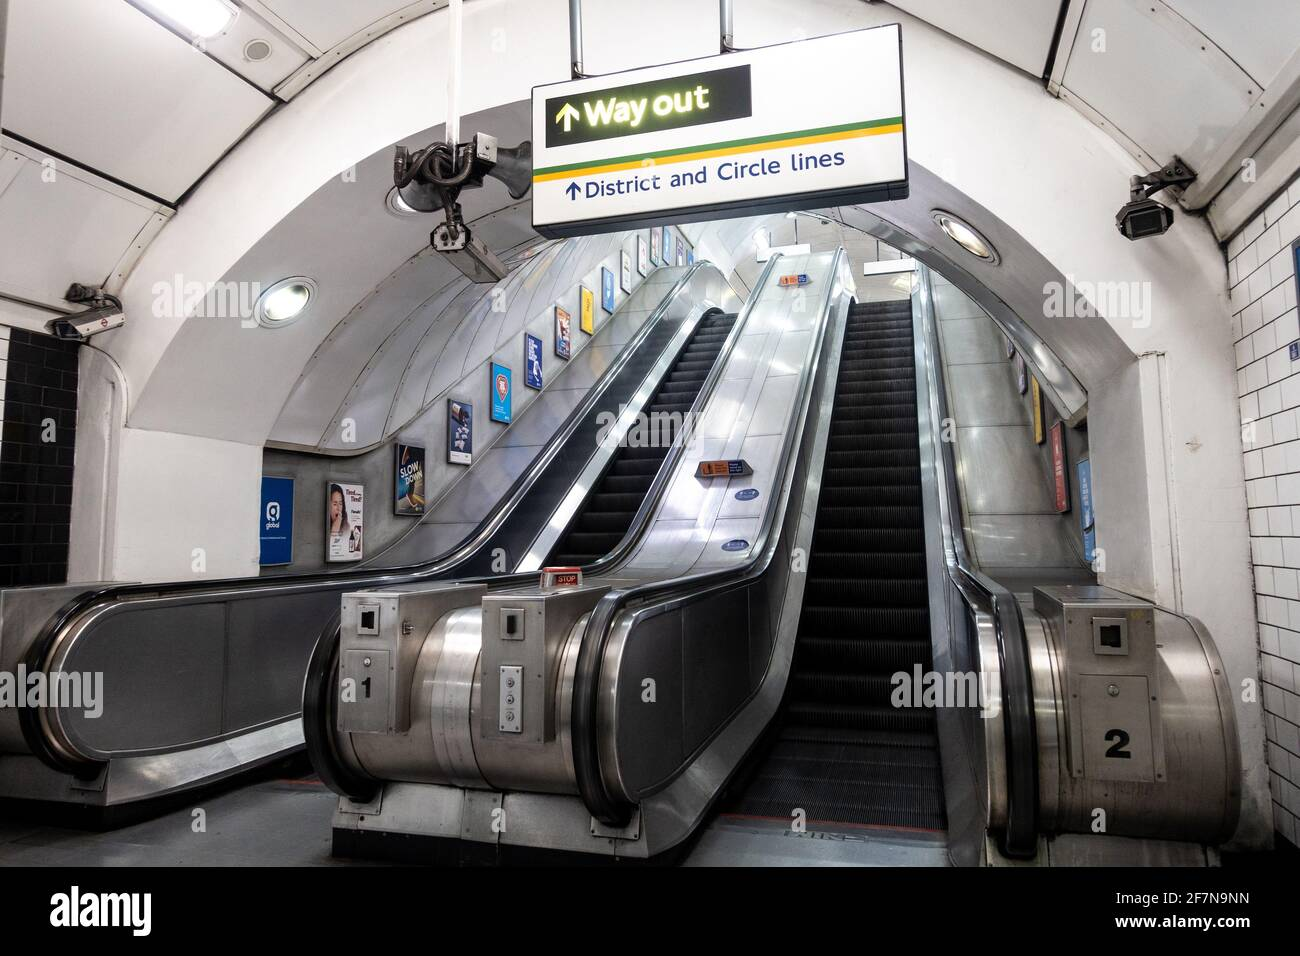 escalators-at-a-london-underground-station-are-empty-due-to-coronavirus-stopping-people-from-traveling-2F7N9NN.jpg